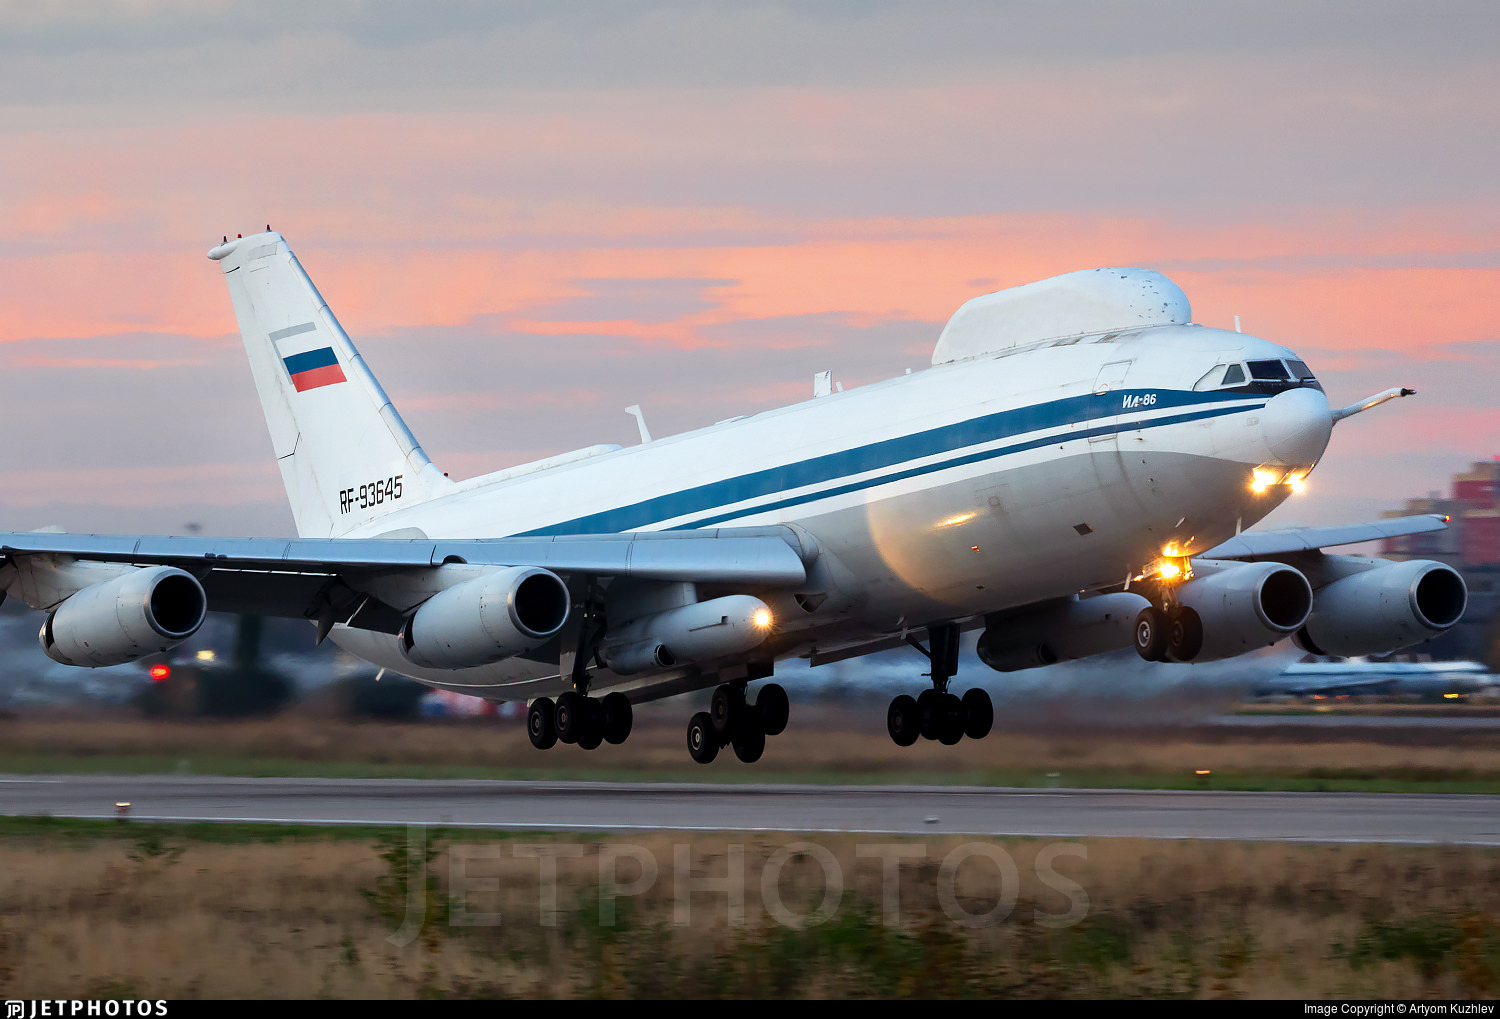 Russian IL-80 'Doomsday Plane' designed to carry Russian leadership in the event of nuclear attack